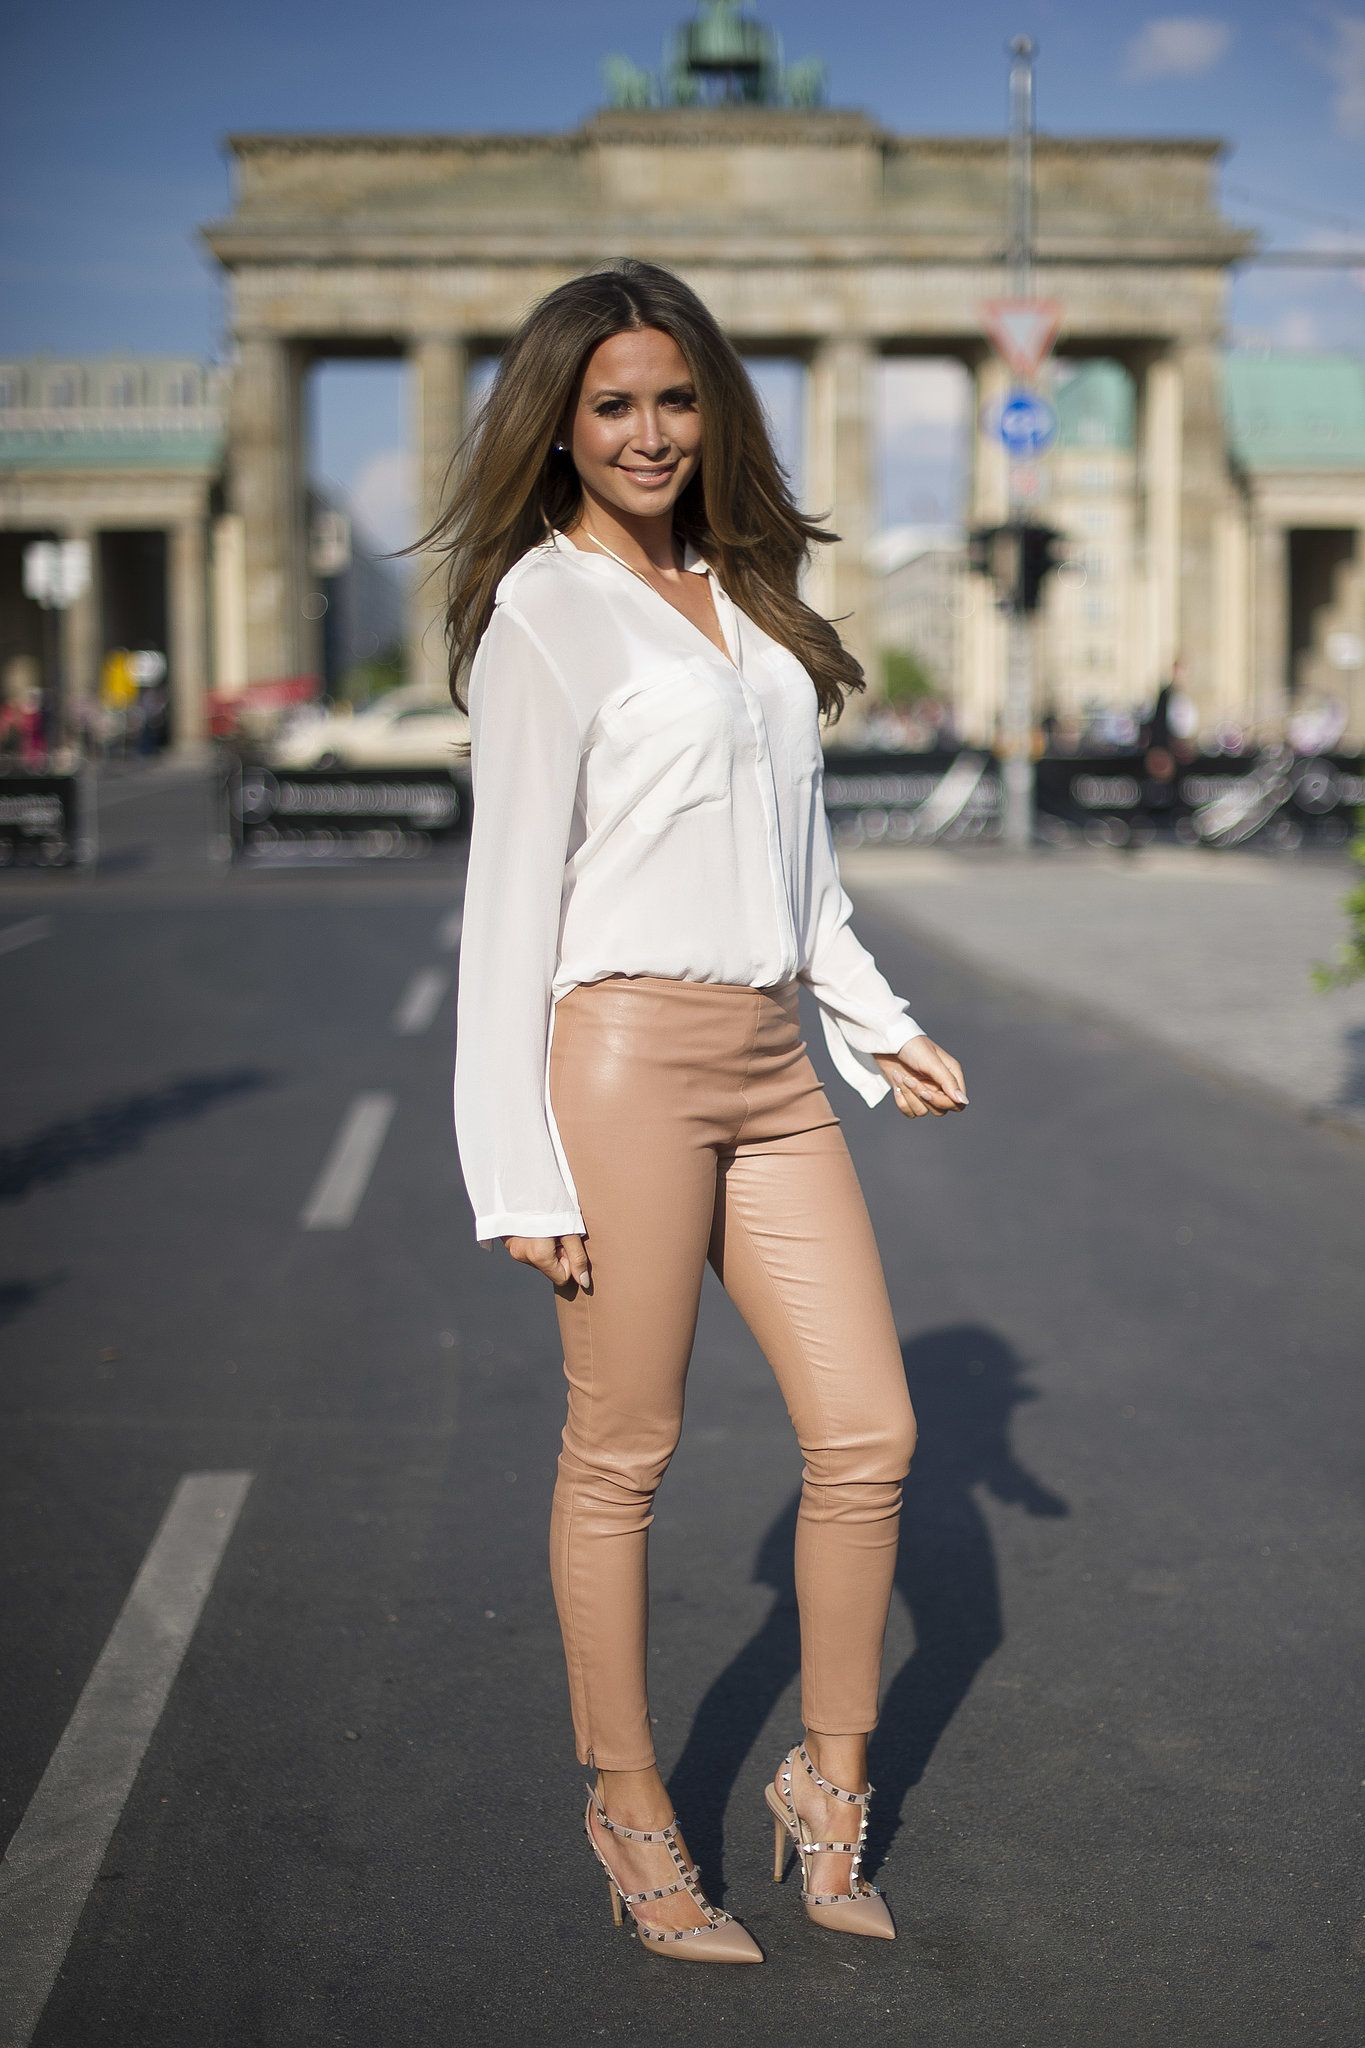 A minimalist's dream outfit: a #silky white blouse with nude #leather pants  and